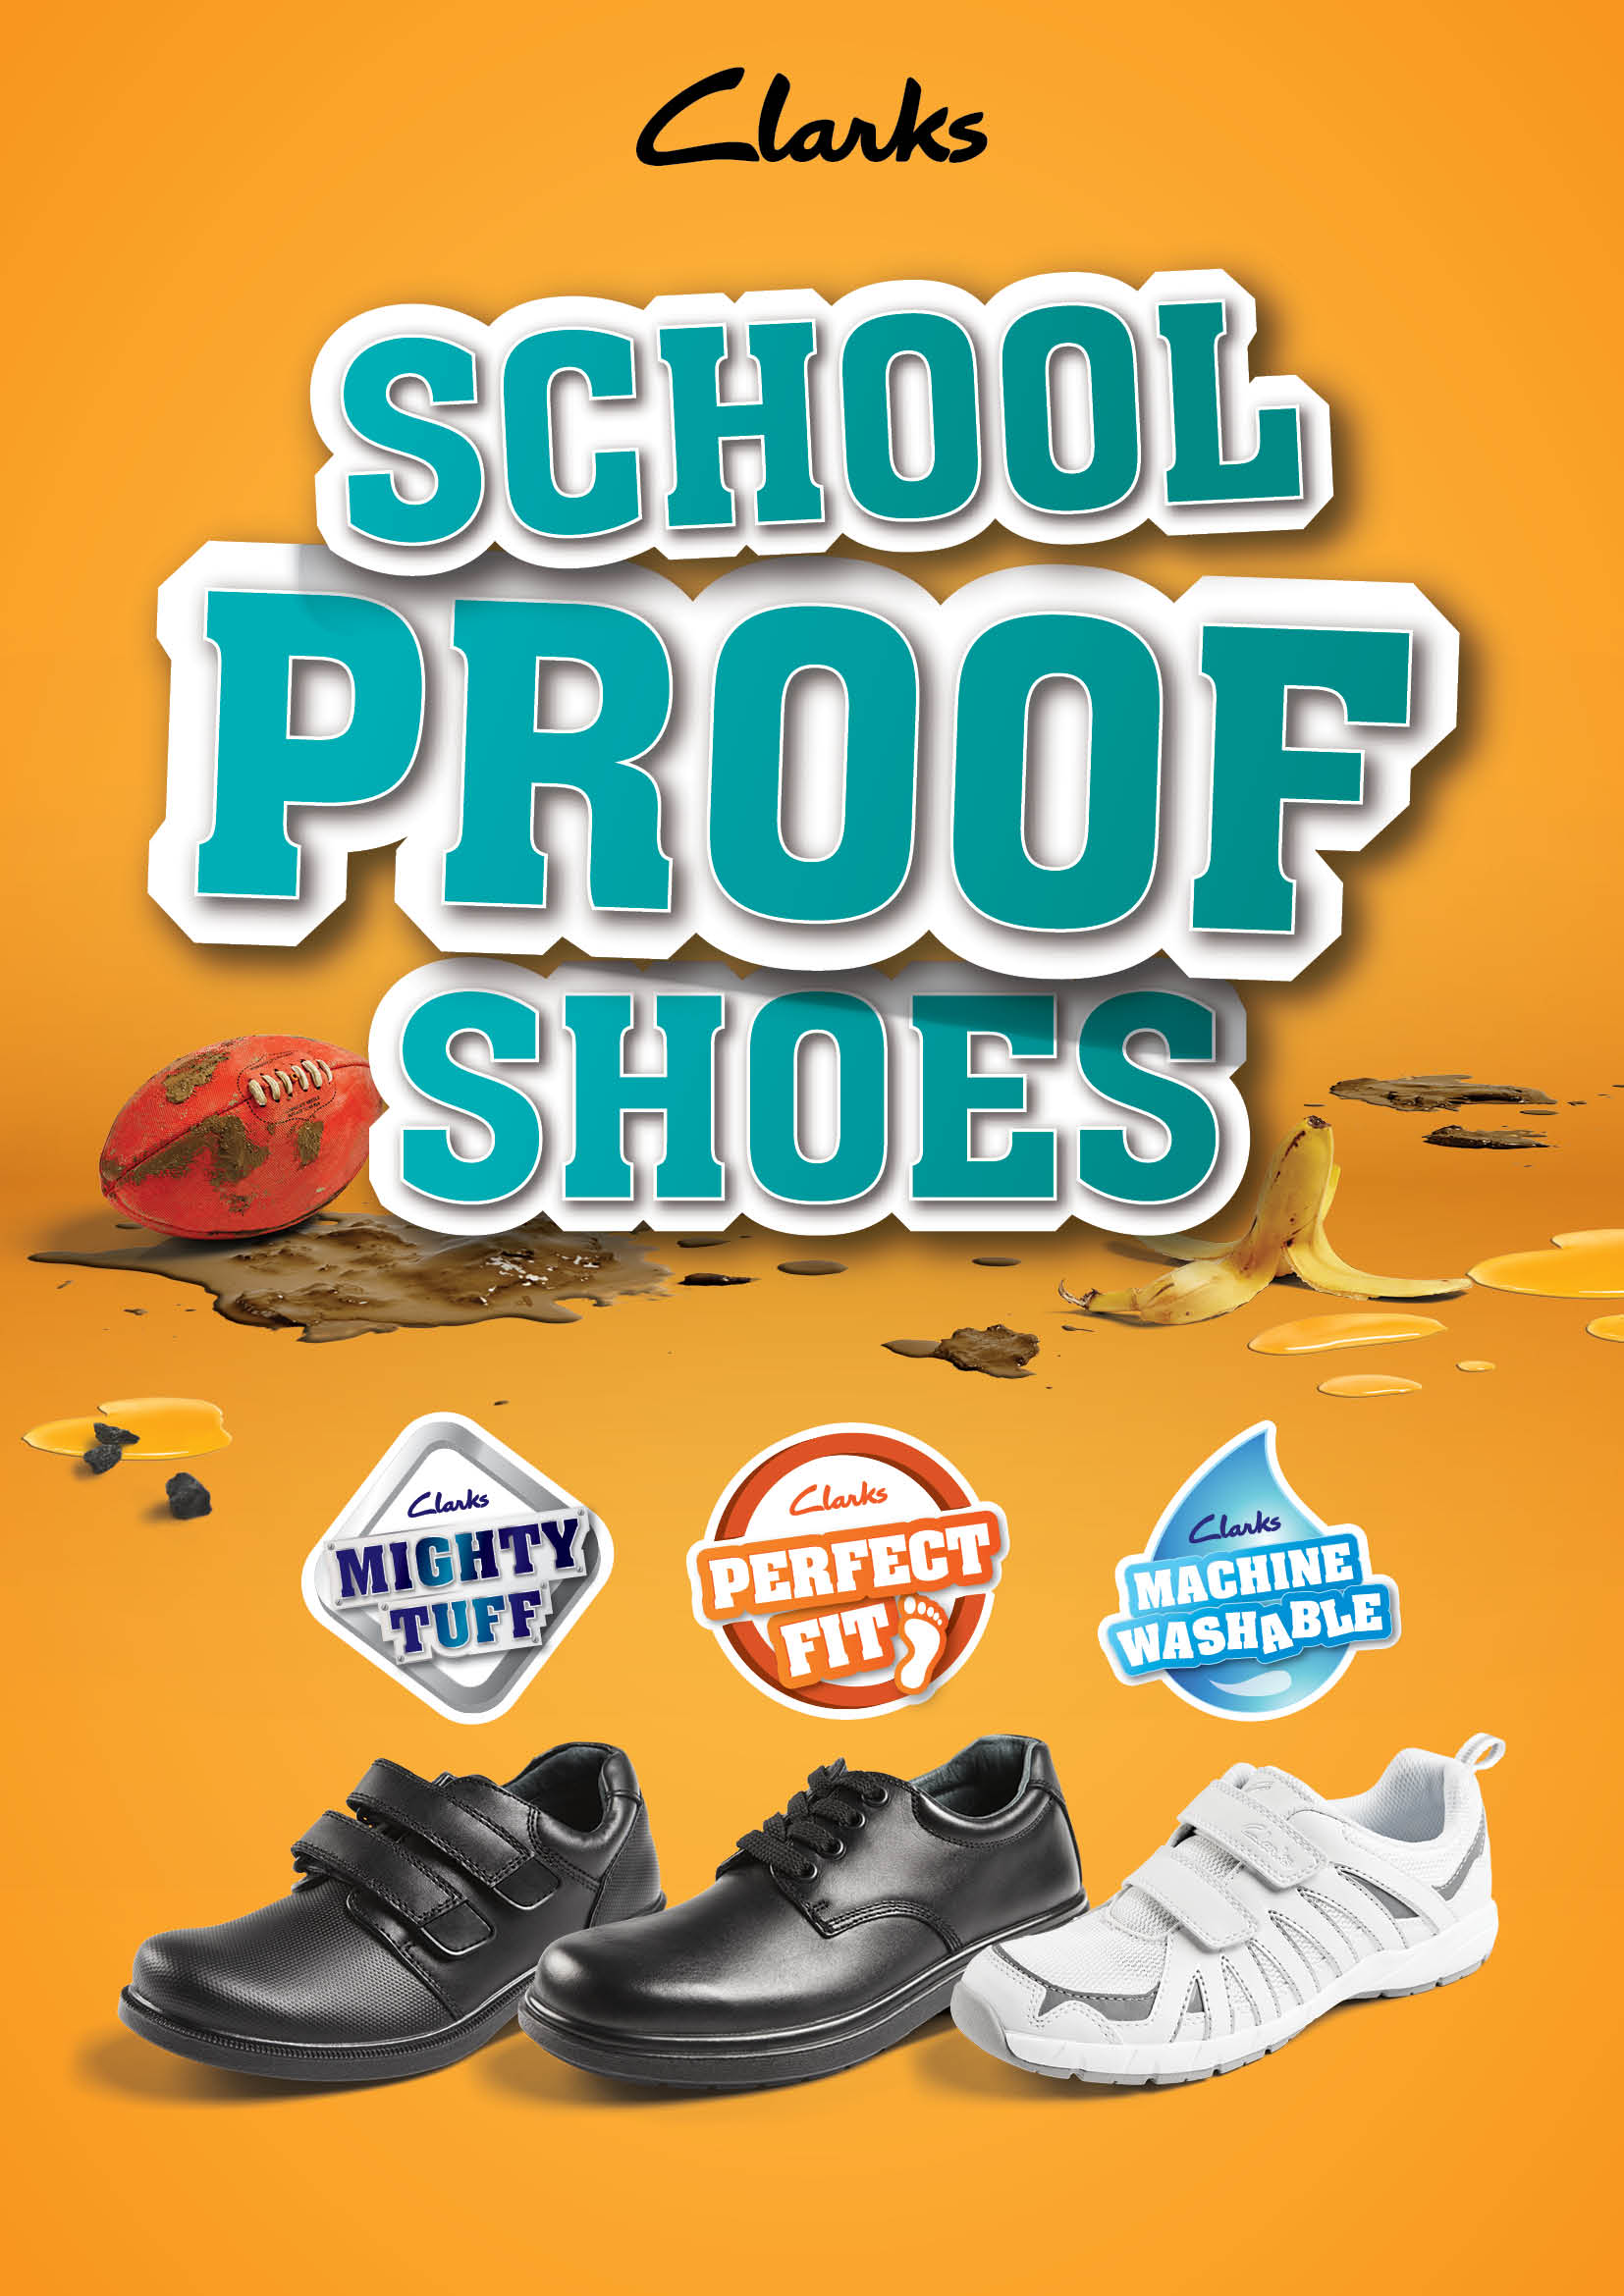 faaf725aef247 clarks back to school shoes